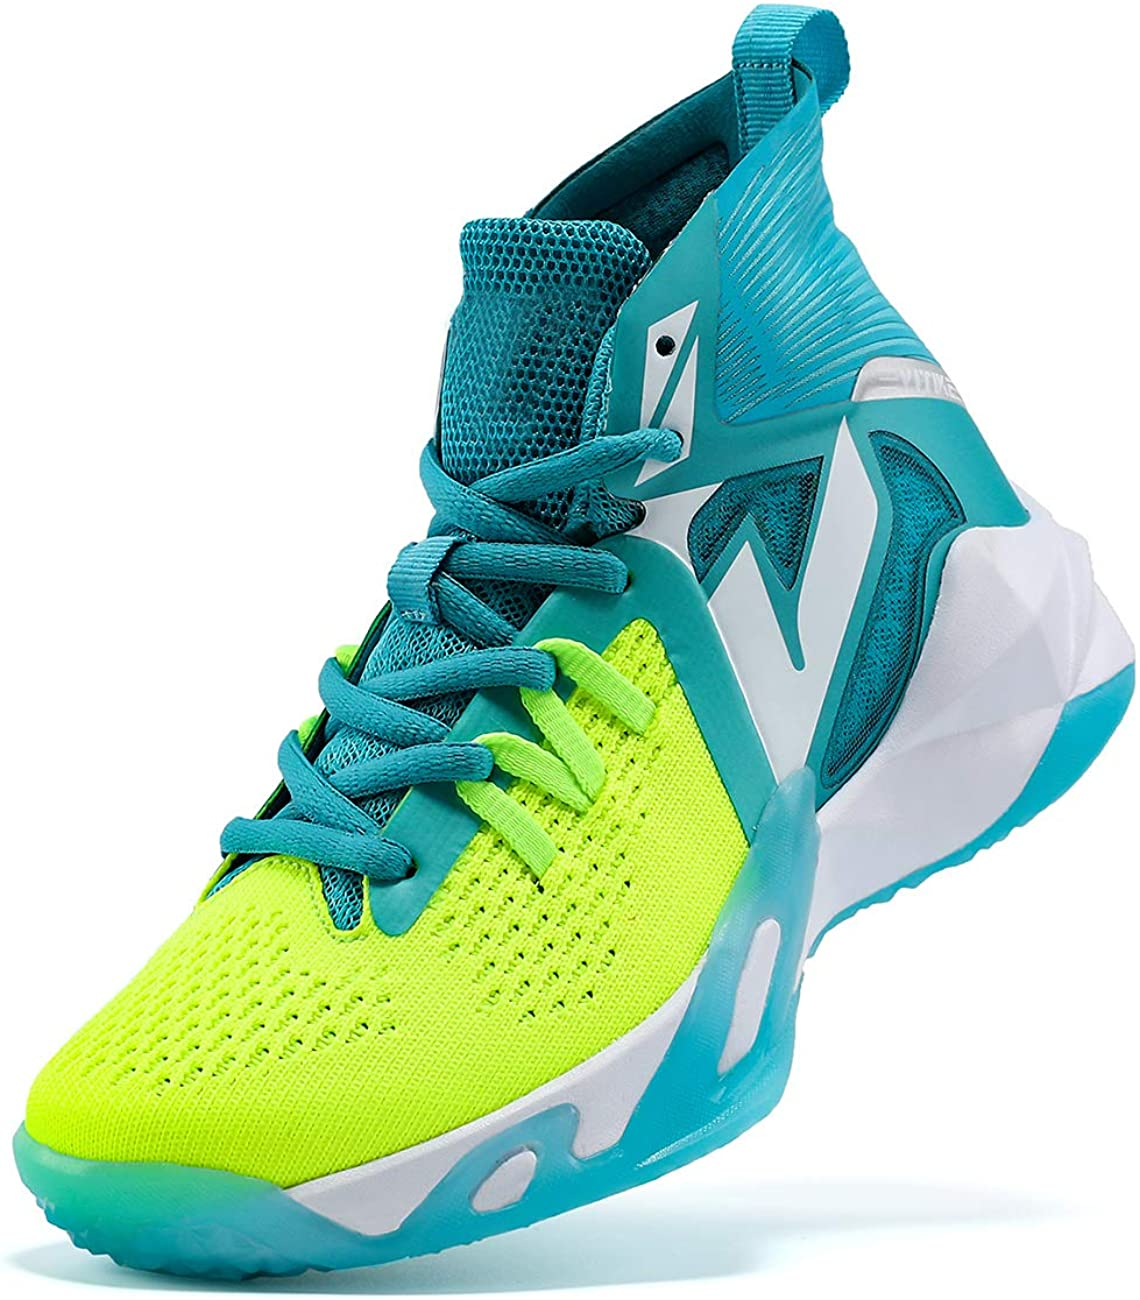   VITUOFLY Kids Basketball Shoes Boys Air Cushion Sneakers Girls Mid Top School Training Shoes Non-Slip Outdoor Sports Shoes Comfortable Boys Running Shoes Durable Little Kid/Big Kid   Basketball